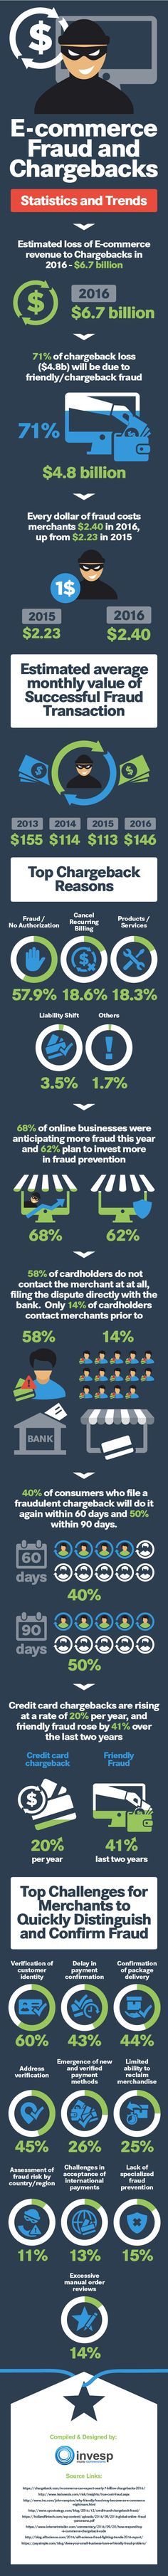 Ecommerce Nightmare: How to Avoid Ecommerce Chargebacks and Fraud [Inforgraphic]